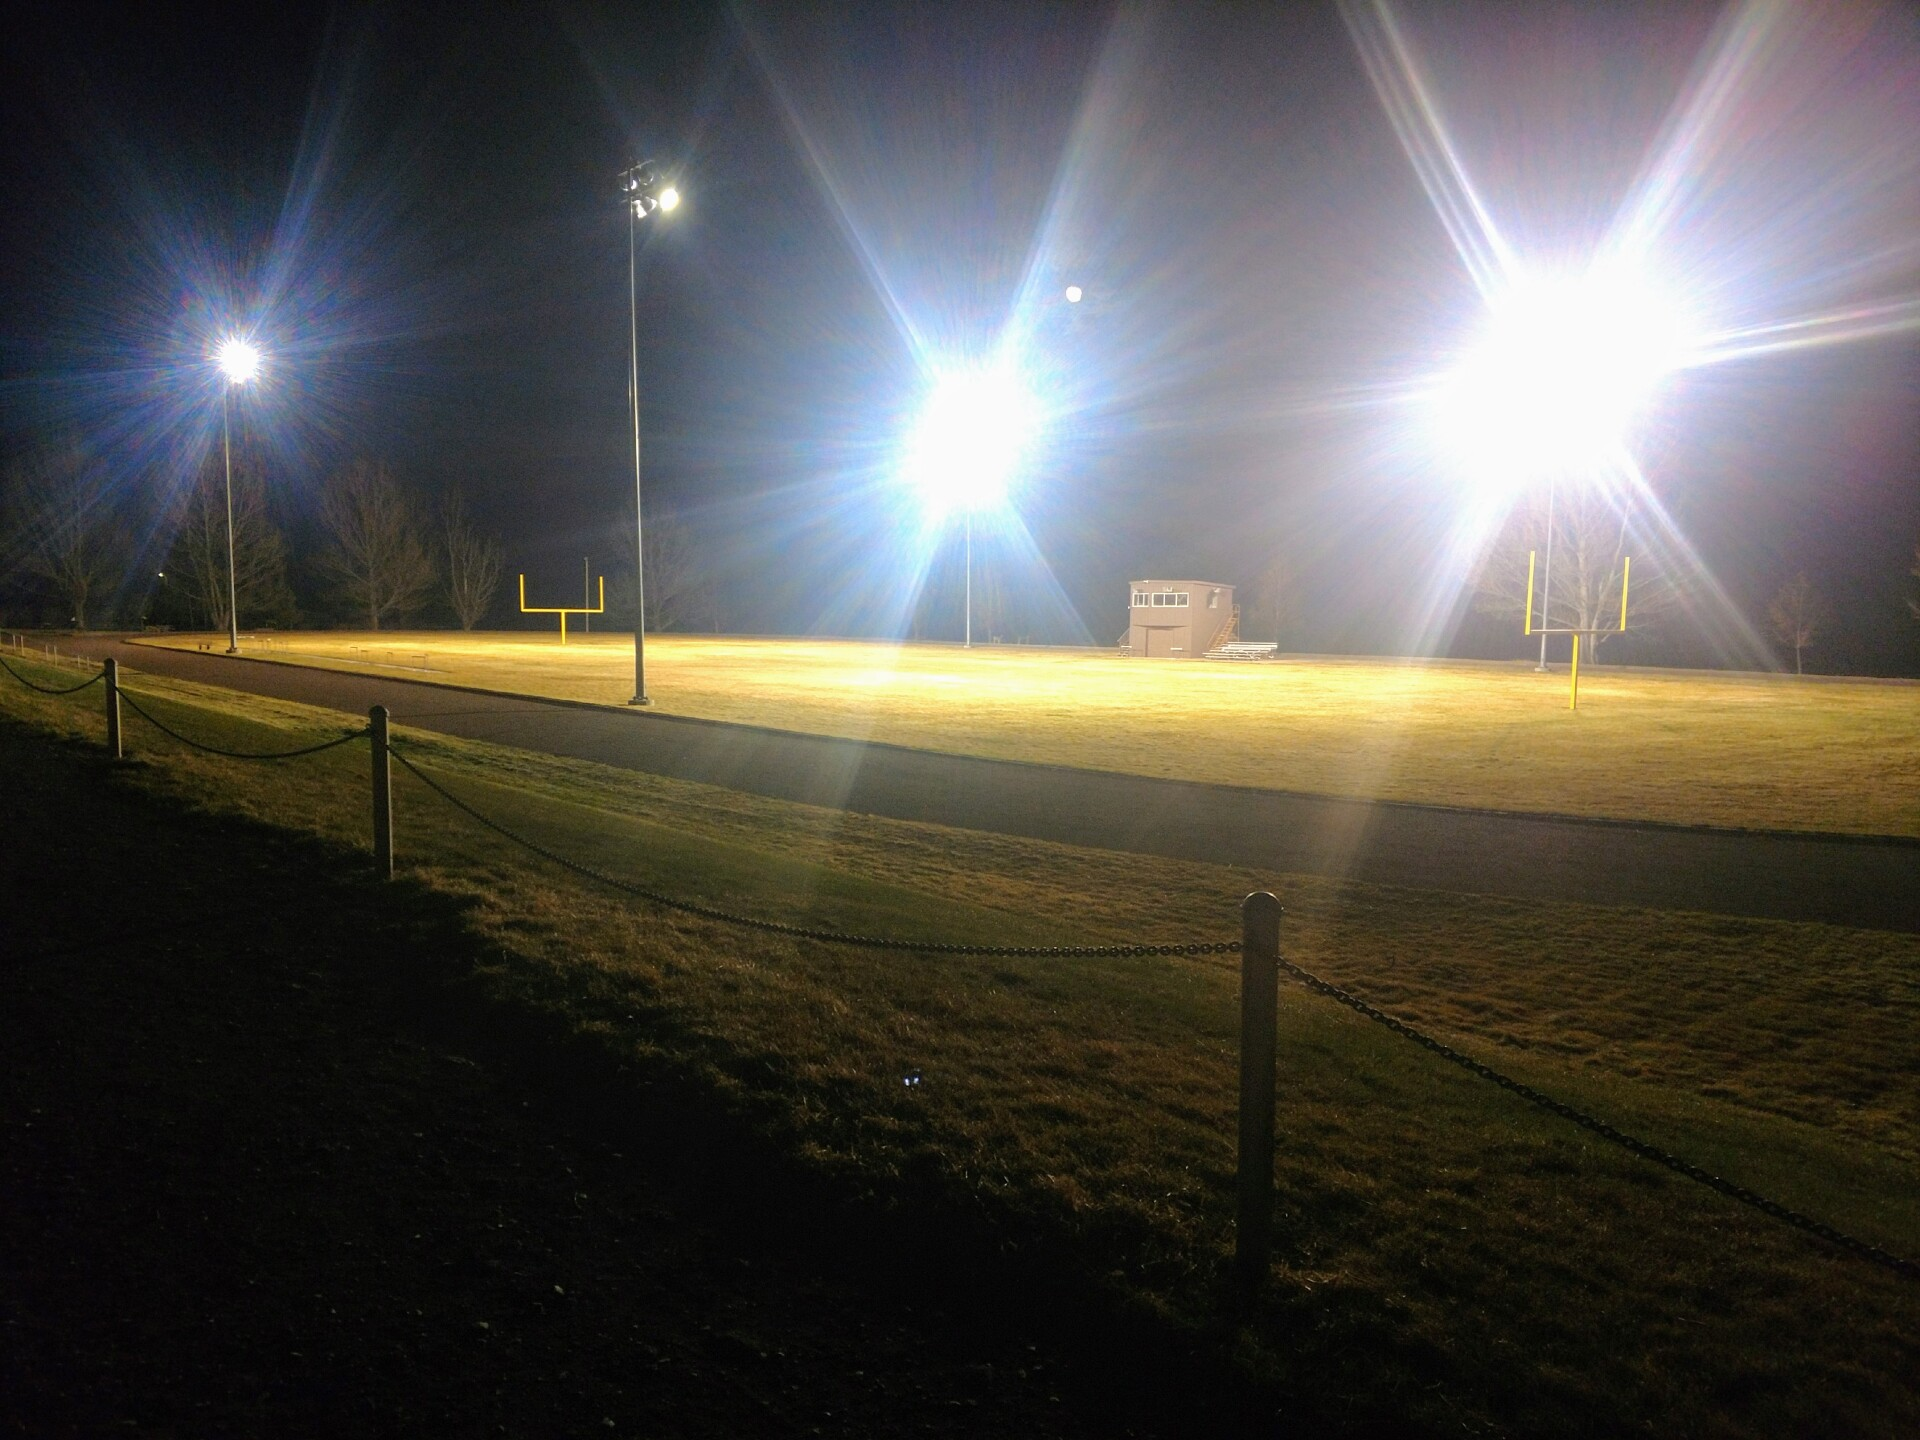 Highwood football stadium lights